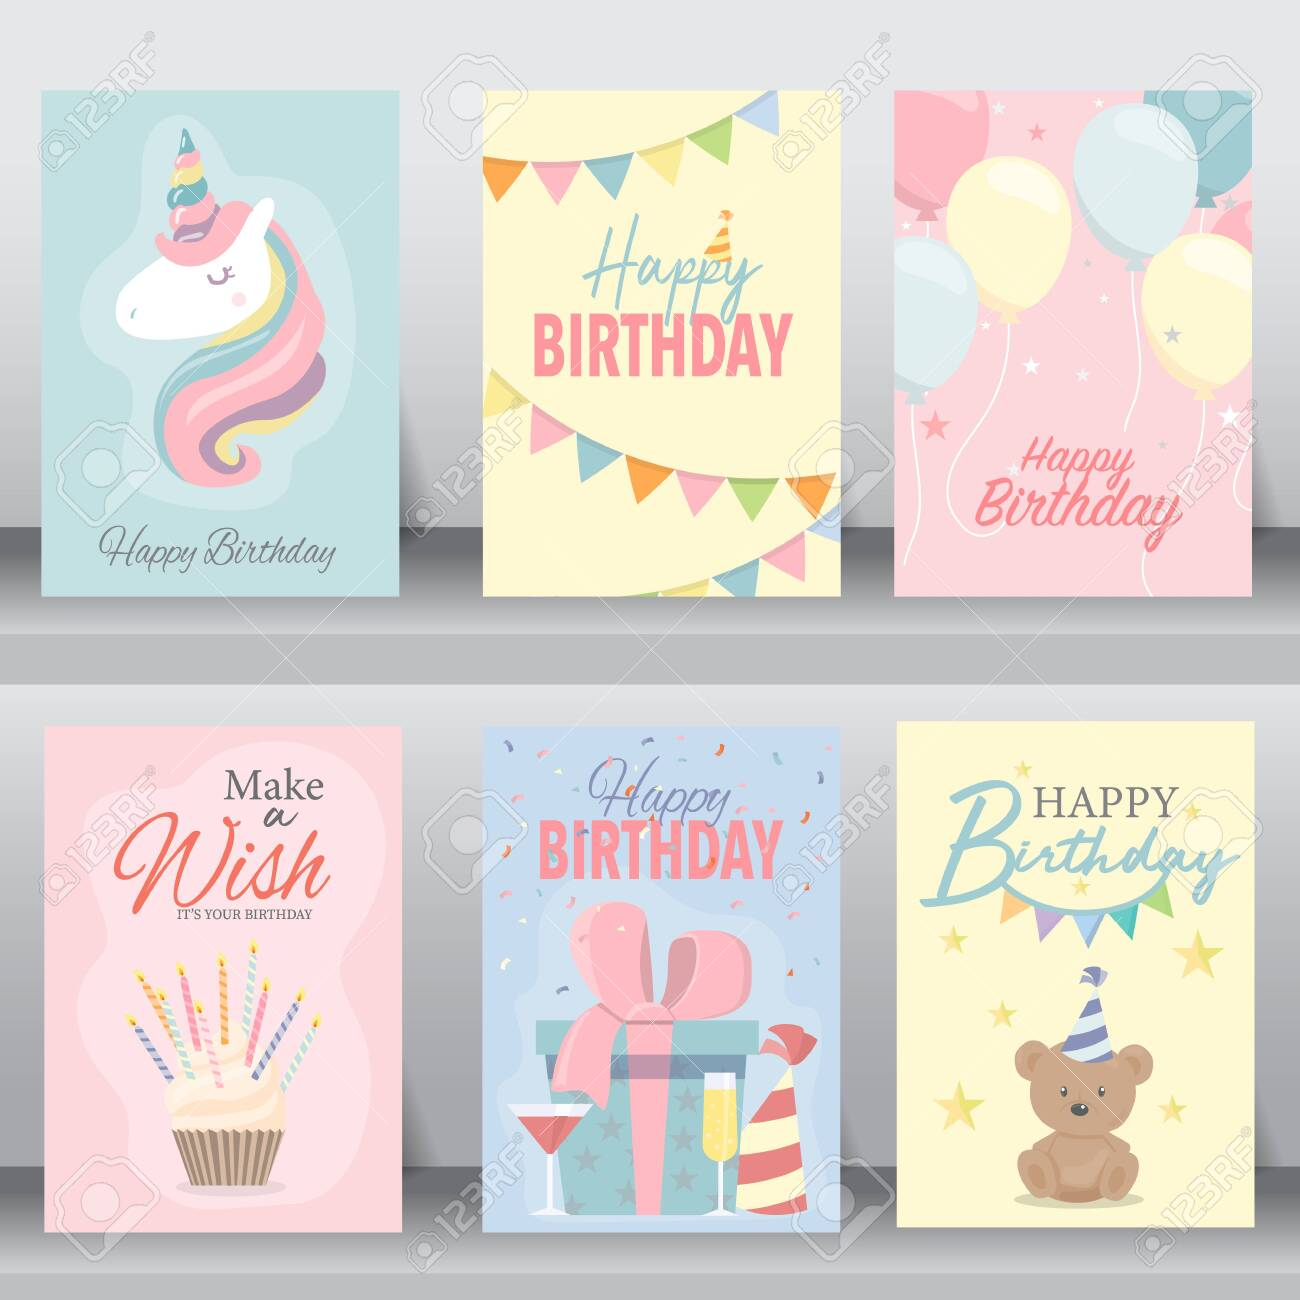 Happy birthday card. greeting and vitiation cards design baby..